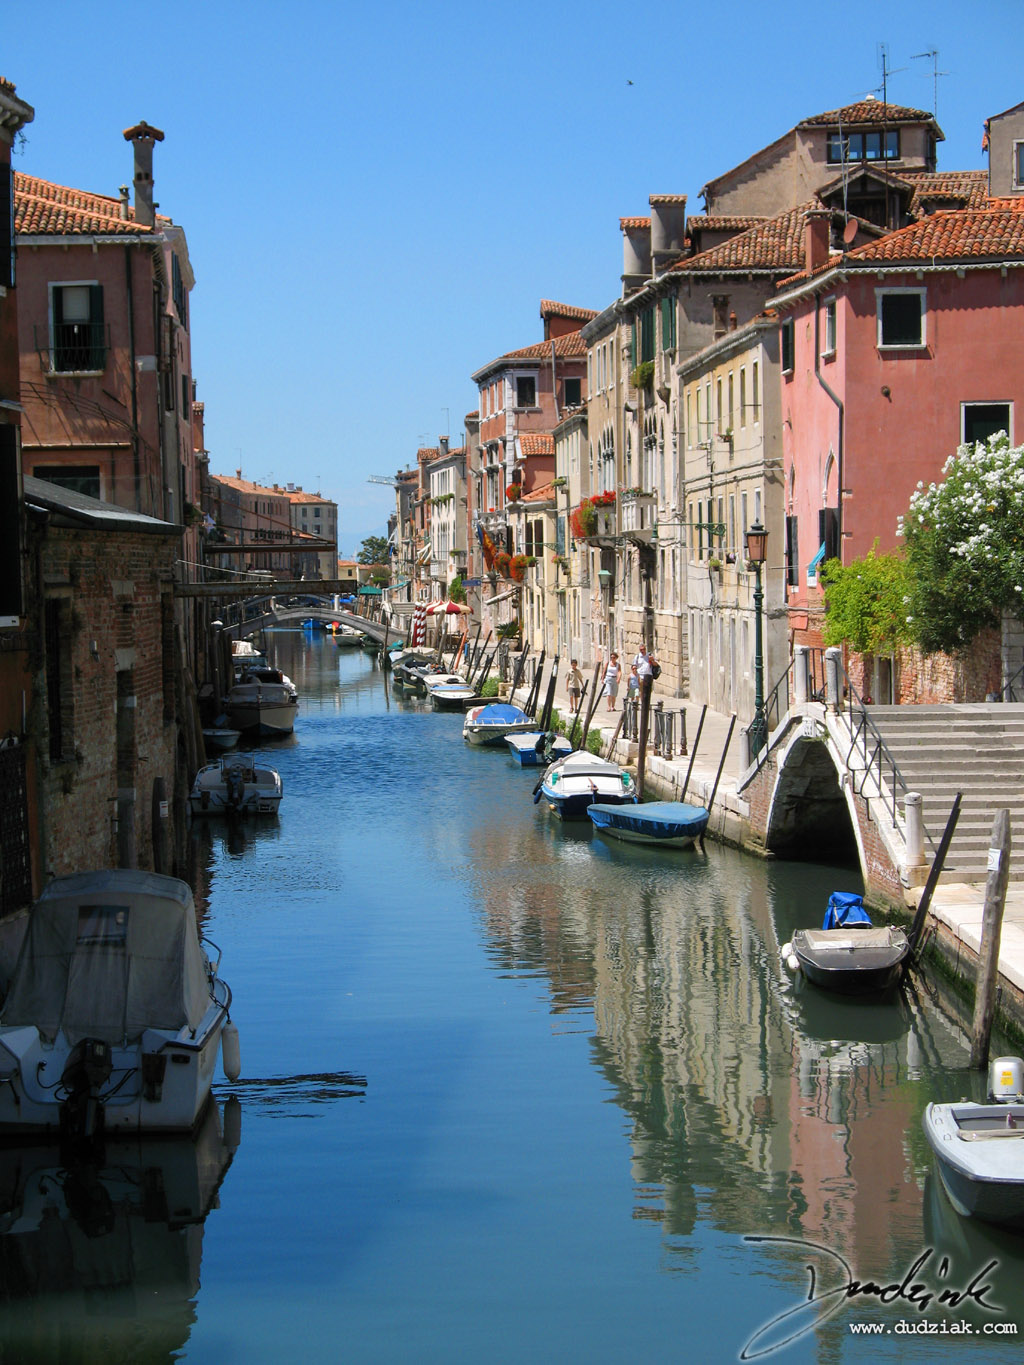 Picture of a venetian canal without all the tourists.  This picture is of canal Rio della Sensa facing West.<br><br>[Lat, Long]:[45.44520606531528, 12.332088947296142]